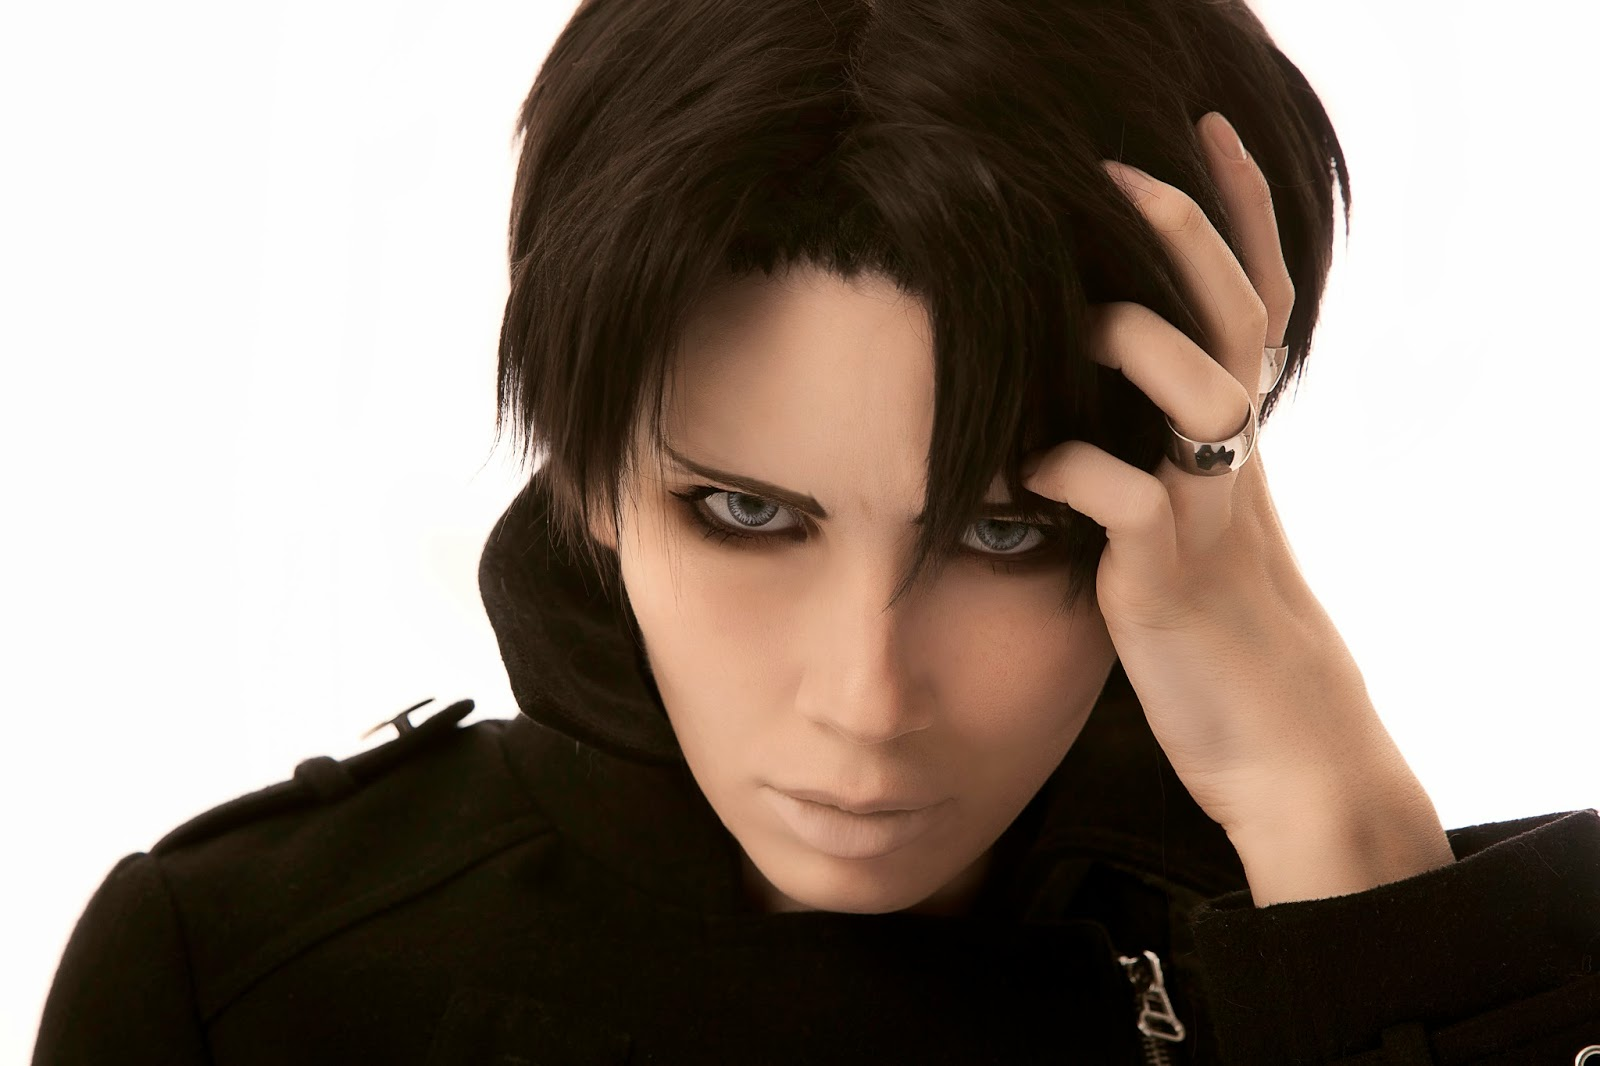 Levi Rivaille Eye Color Have A Similar Type So